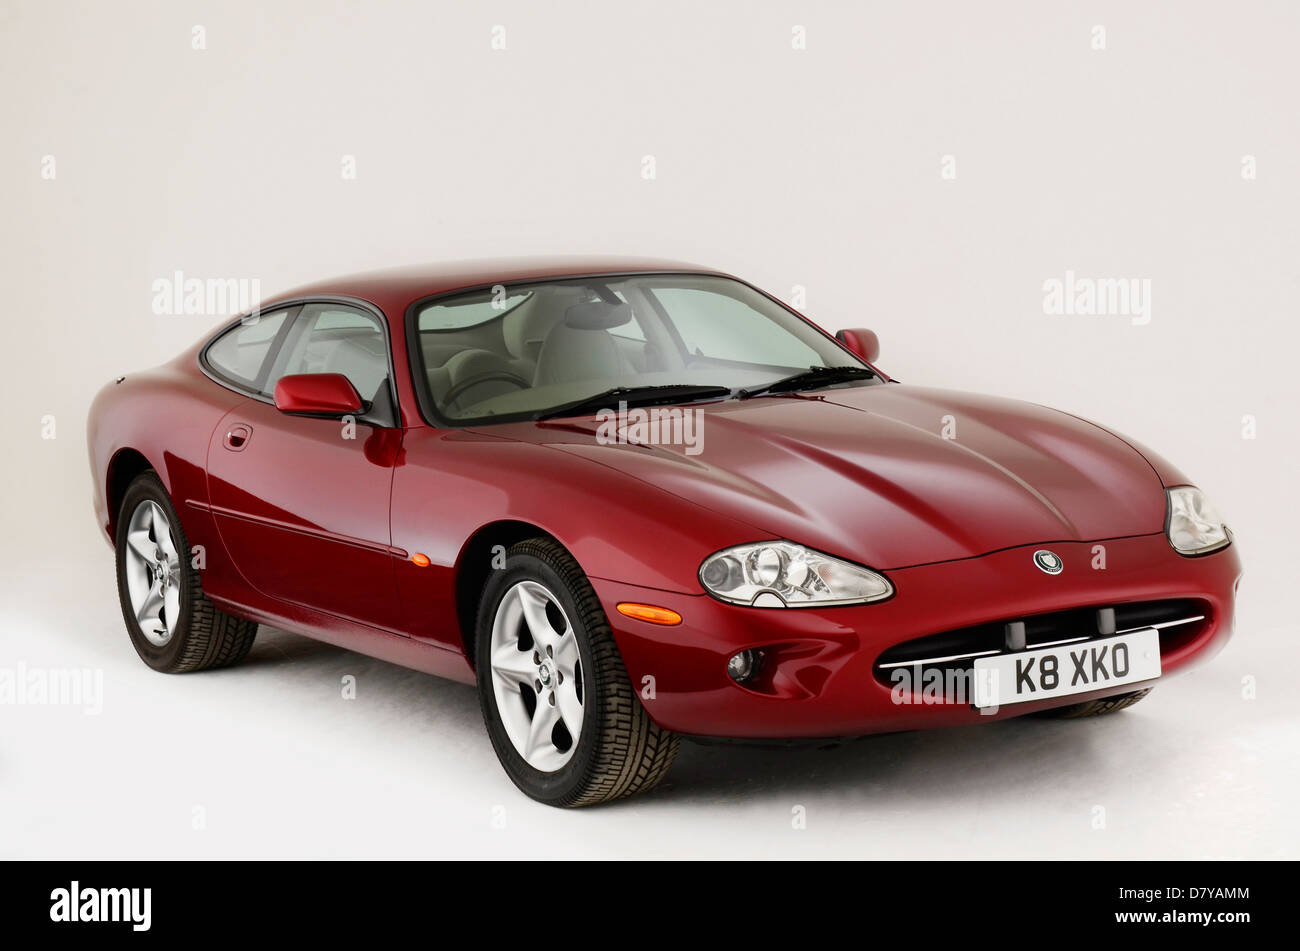 1999 Jaguar XK8 Coupe Stock Photo